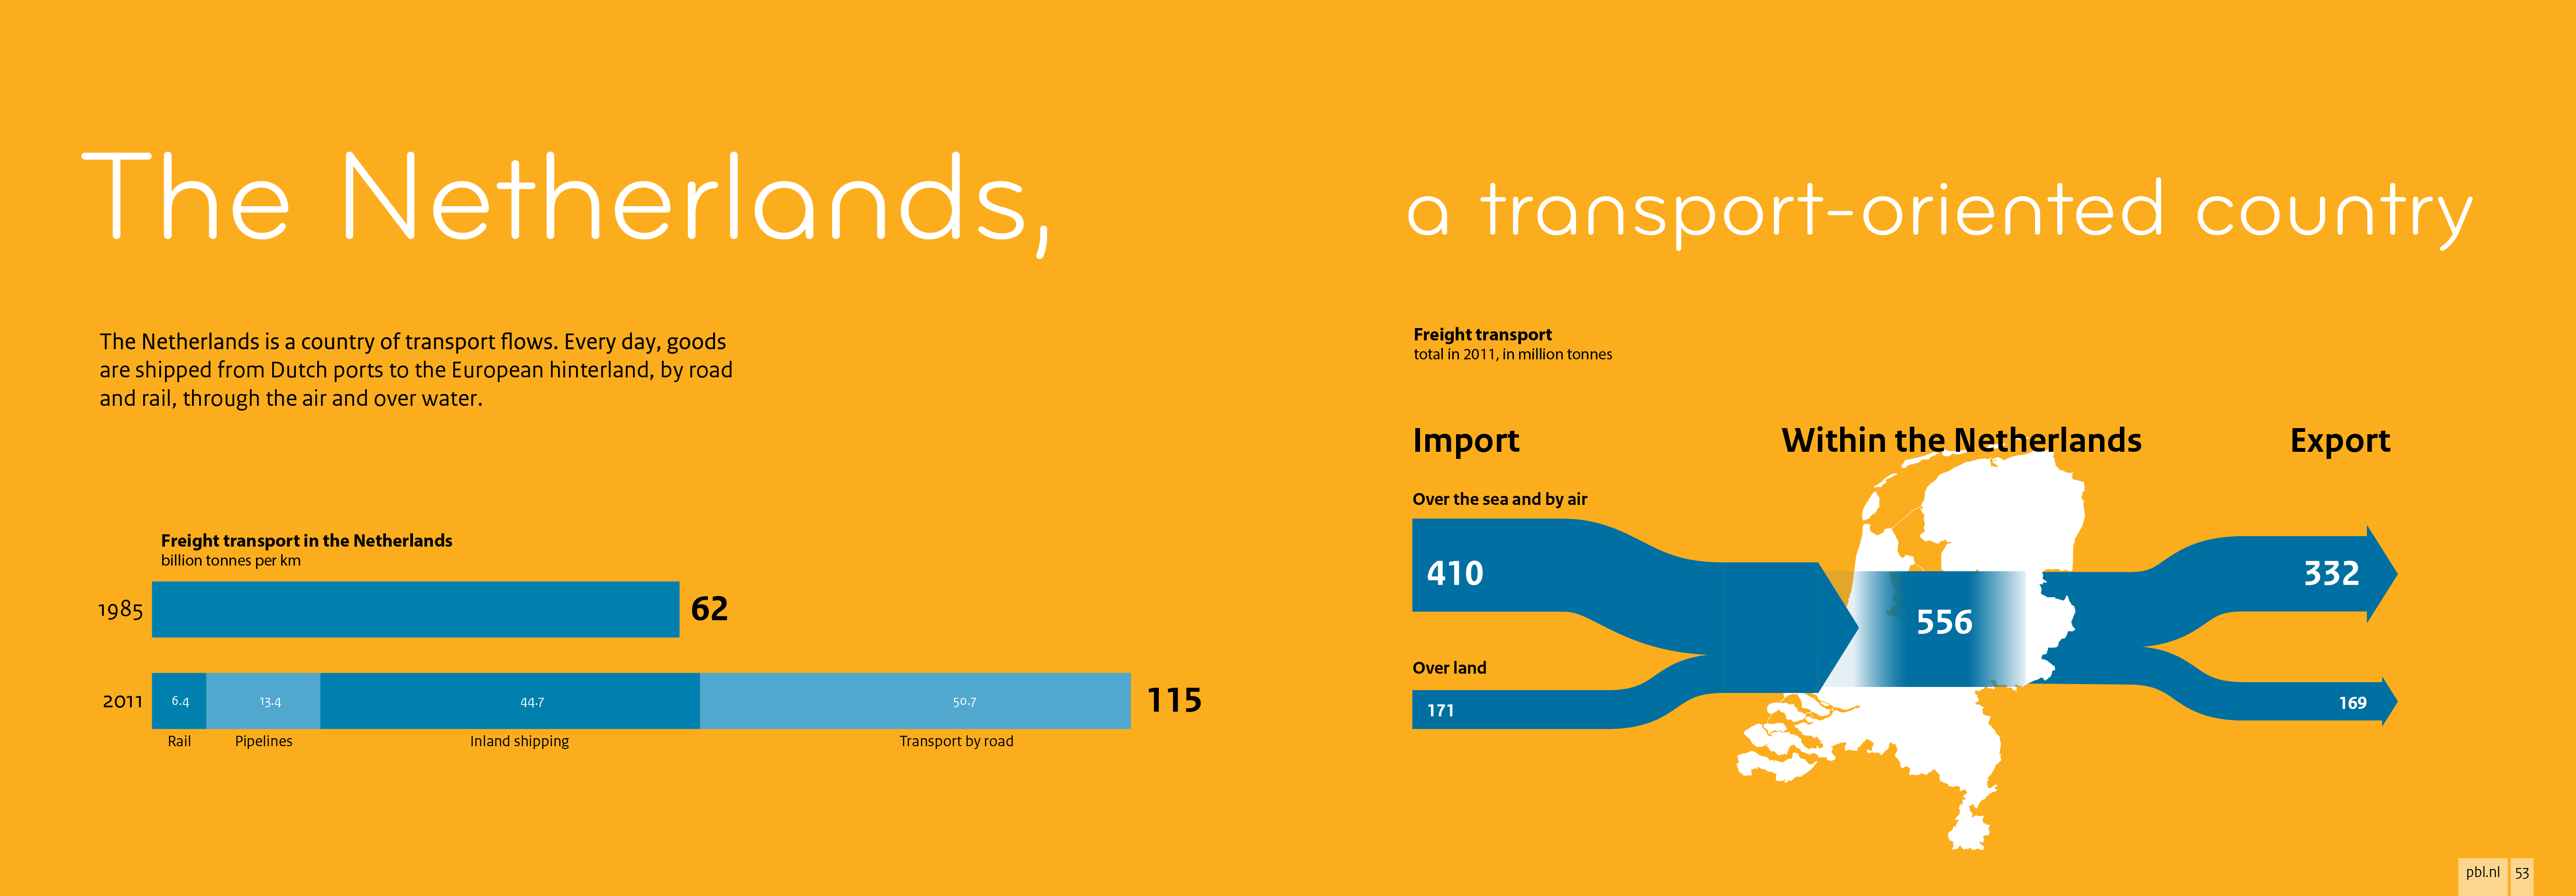 The Netherlands is a country of transport flows.